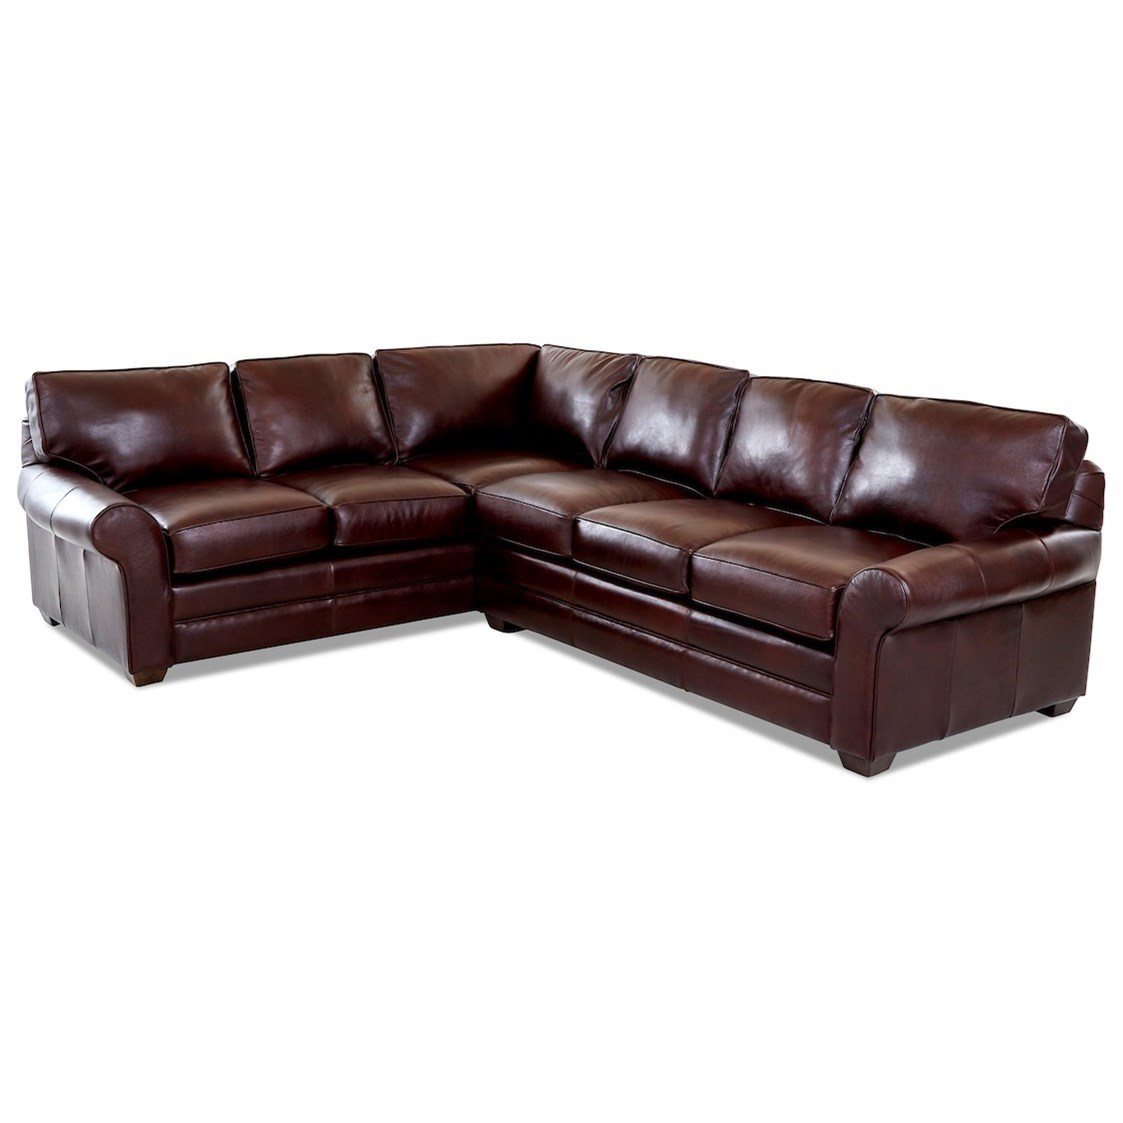 Troupe 2 Pc Sectional Sofa w/ RAF Sofa by Klaussner at Johnny Janosik